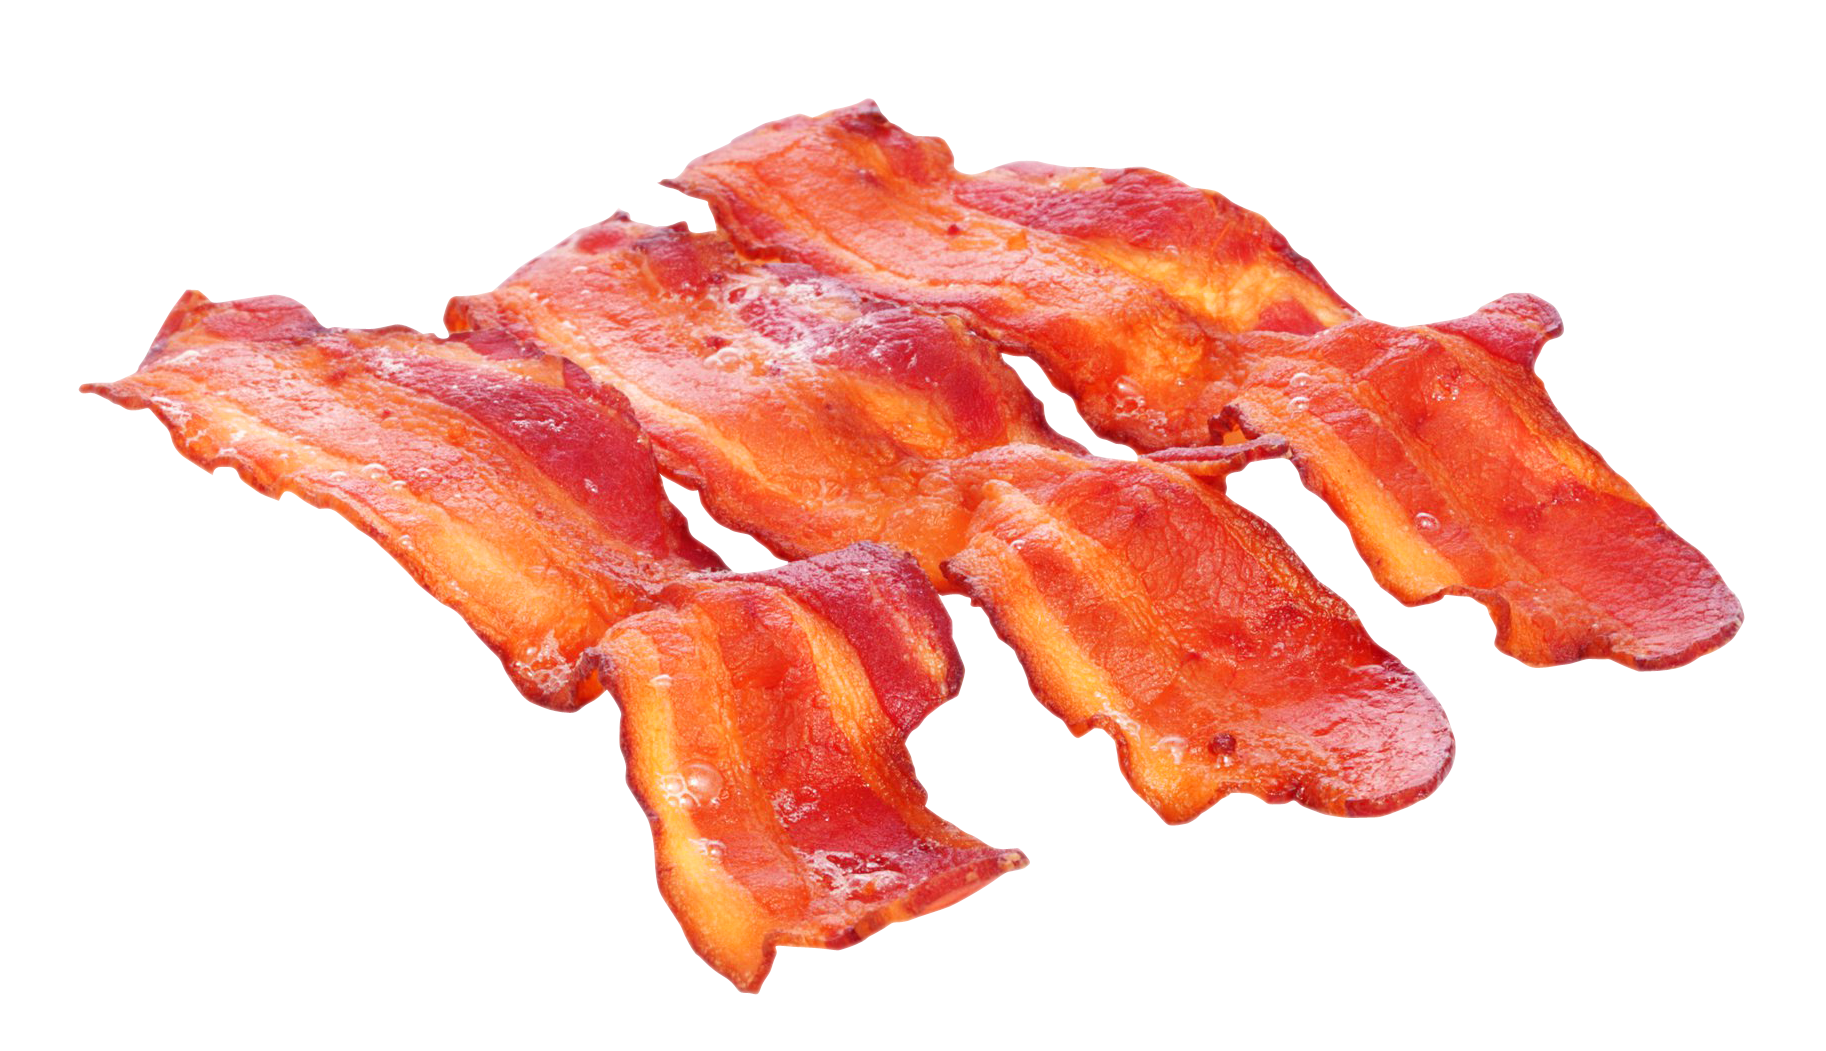 bacon png transparent image pngpix soda can clipart white soda can clipart white